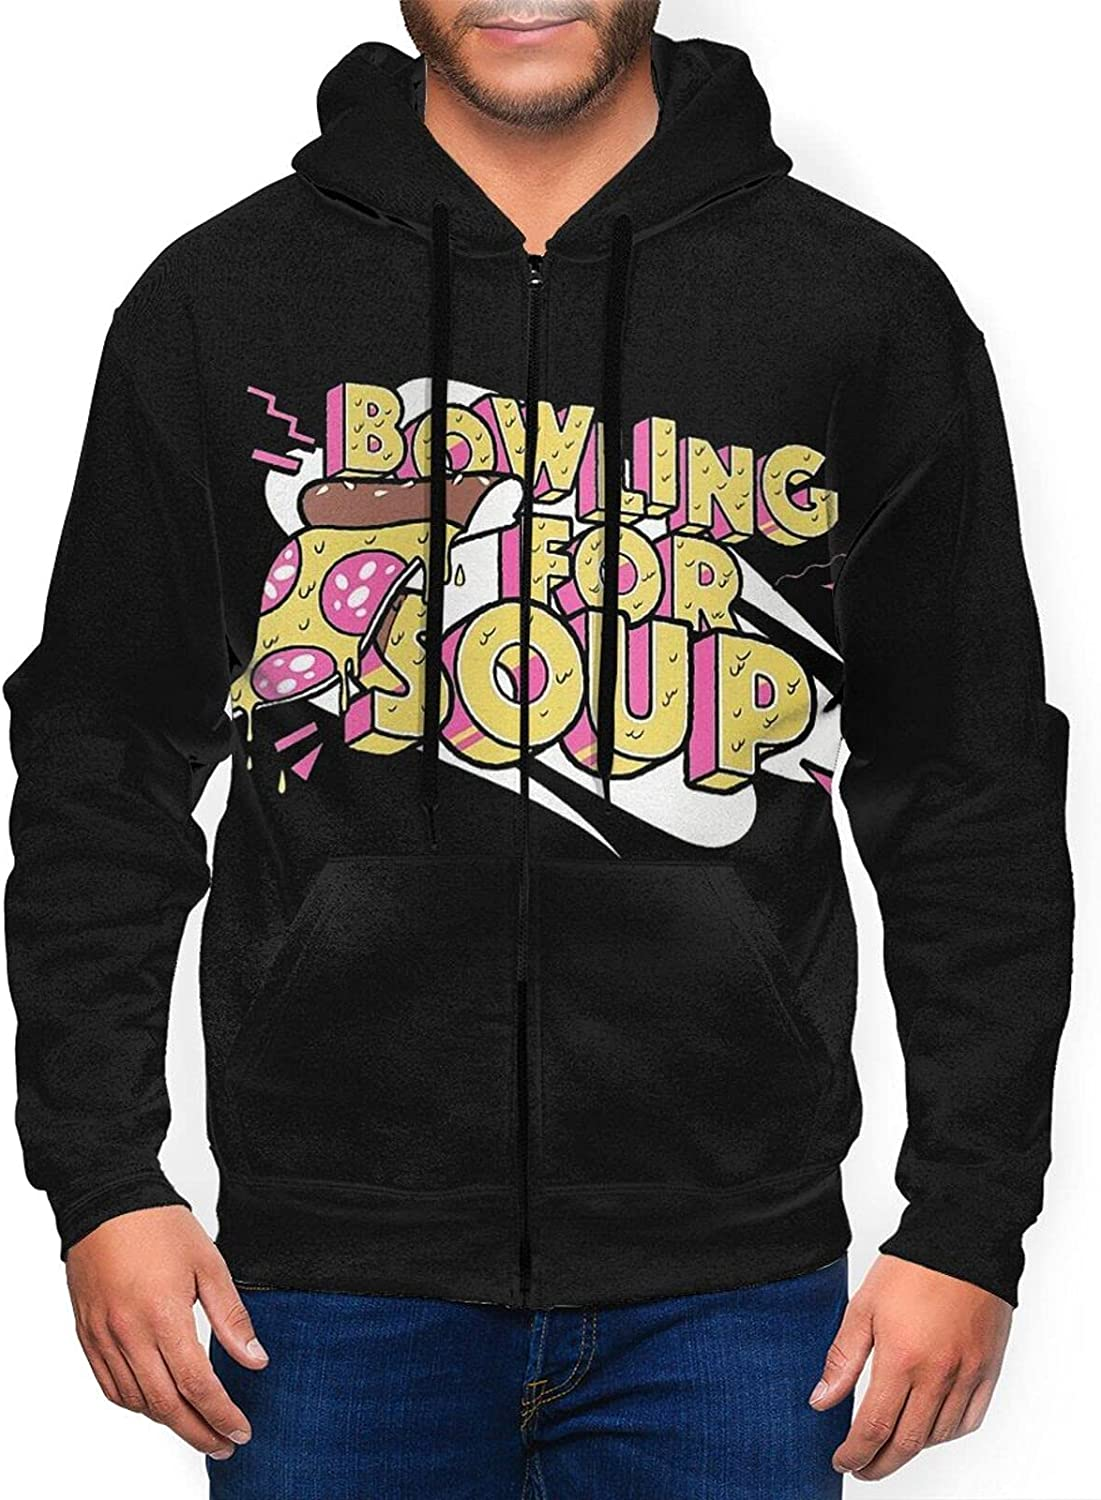 Berniellis Bowling for Soup Men's Hooded Max 61% OFF Athletic Sweatshirt Free shipping on posting reviews Fit